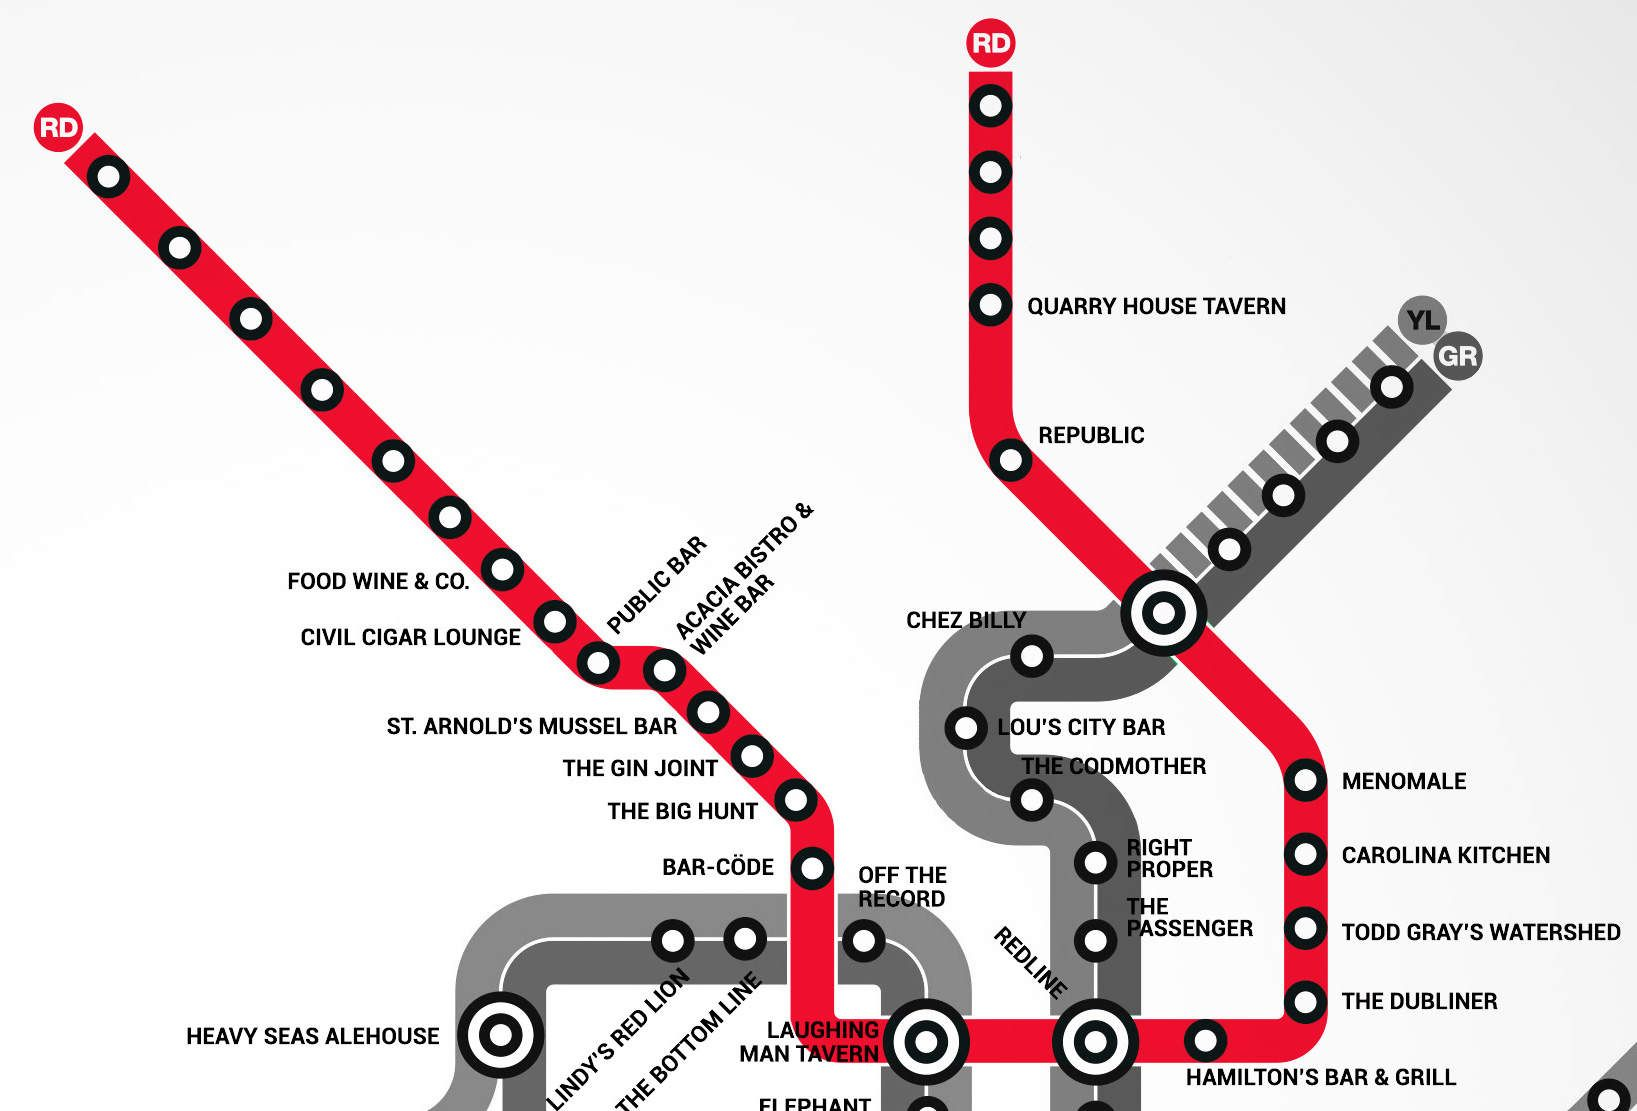 DC's first Metro bar map will direct you to beer